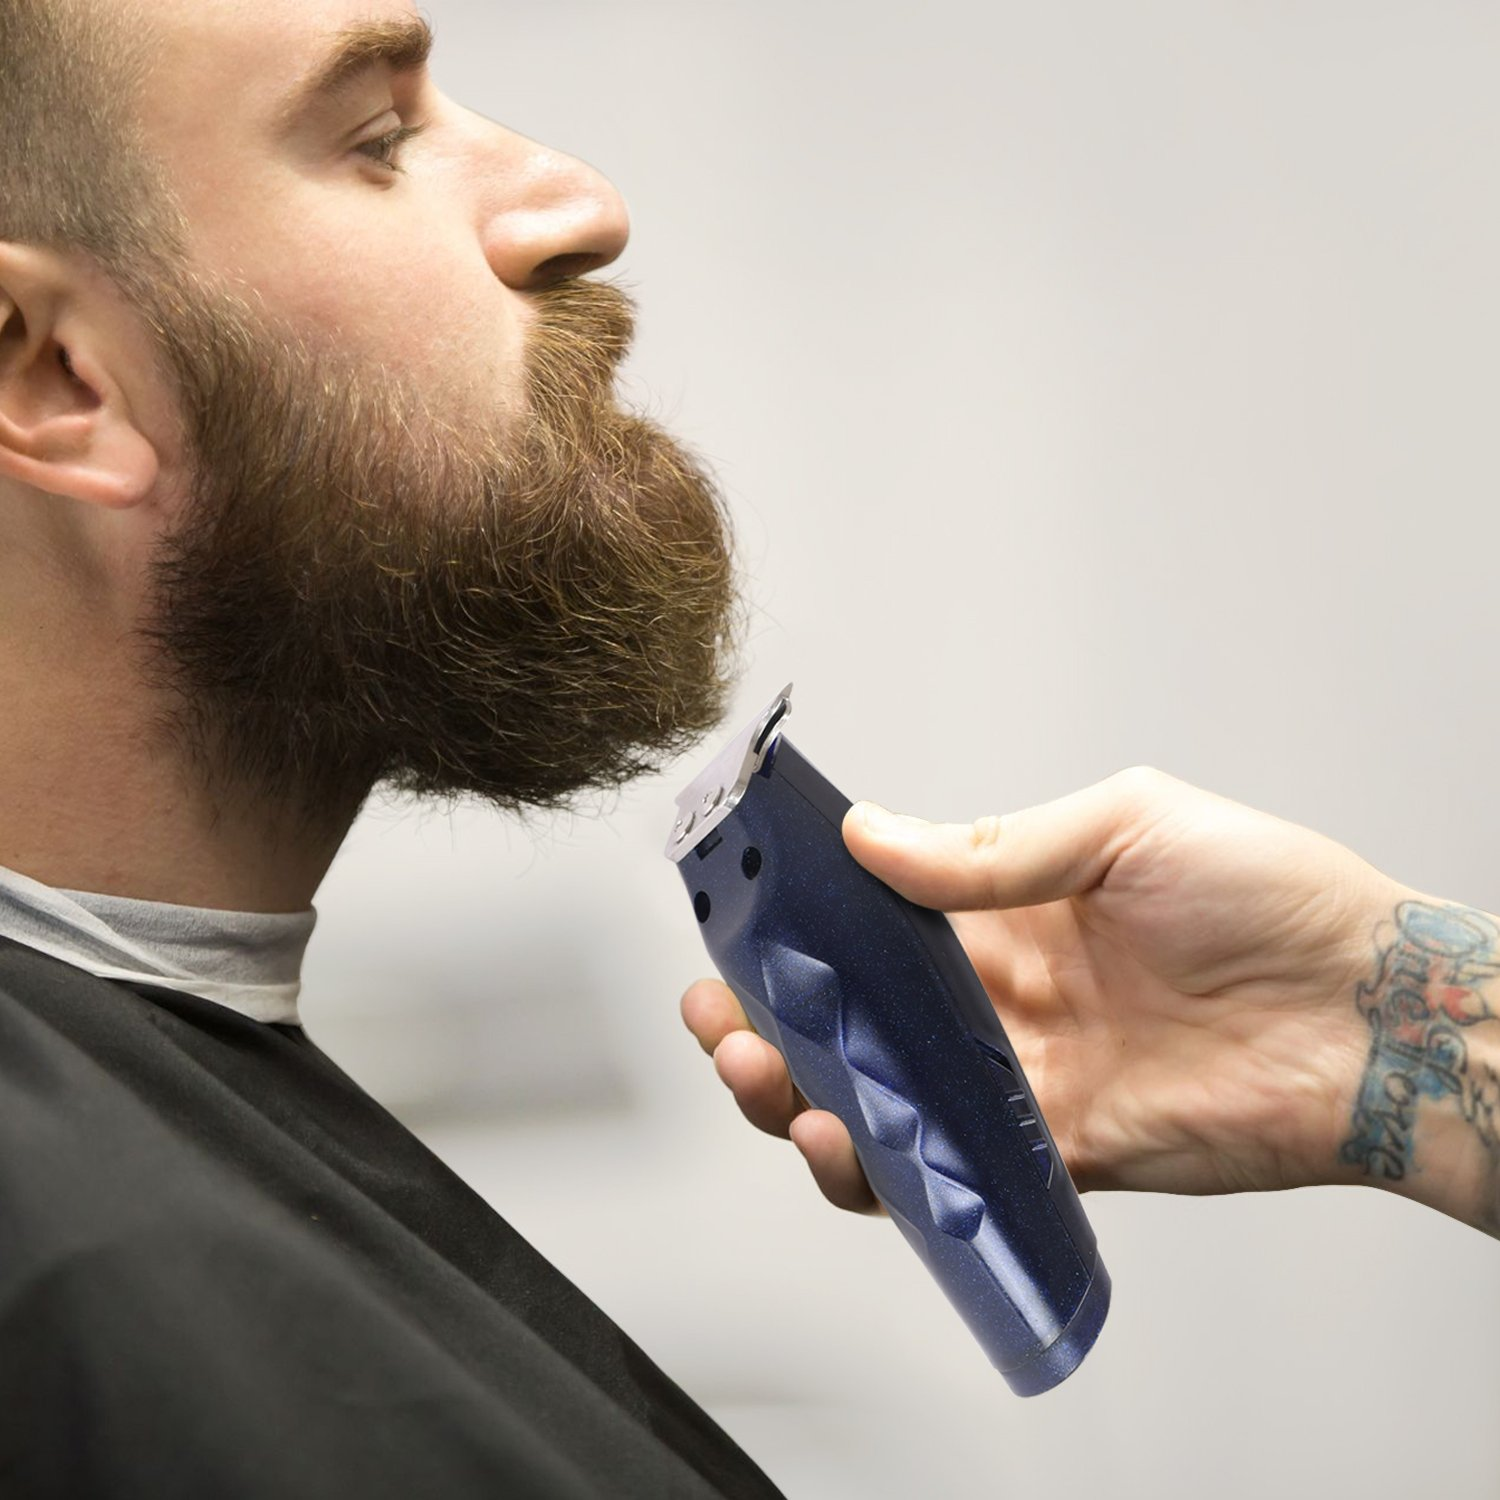 SUPRENT Beard Trimmer by SUPRENT (Image #6)